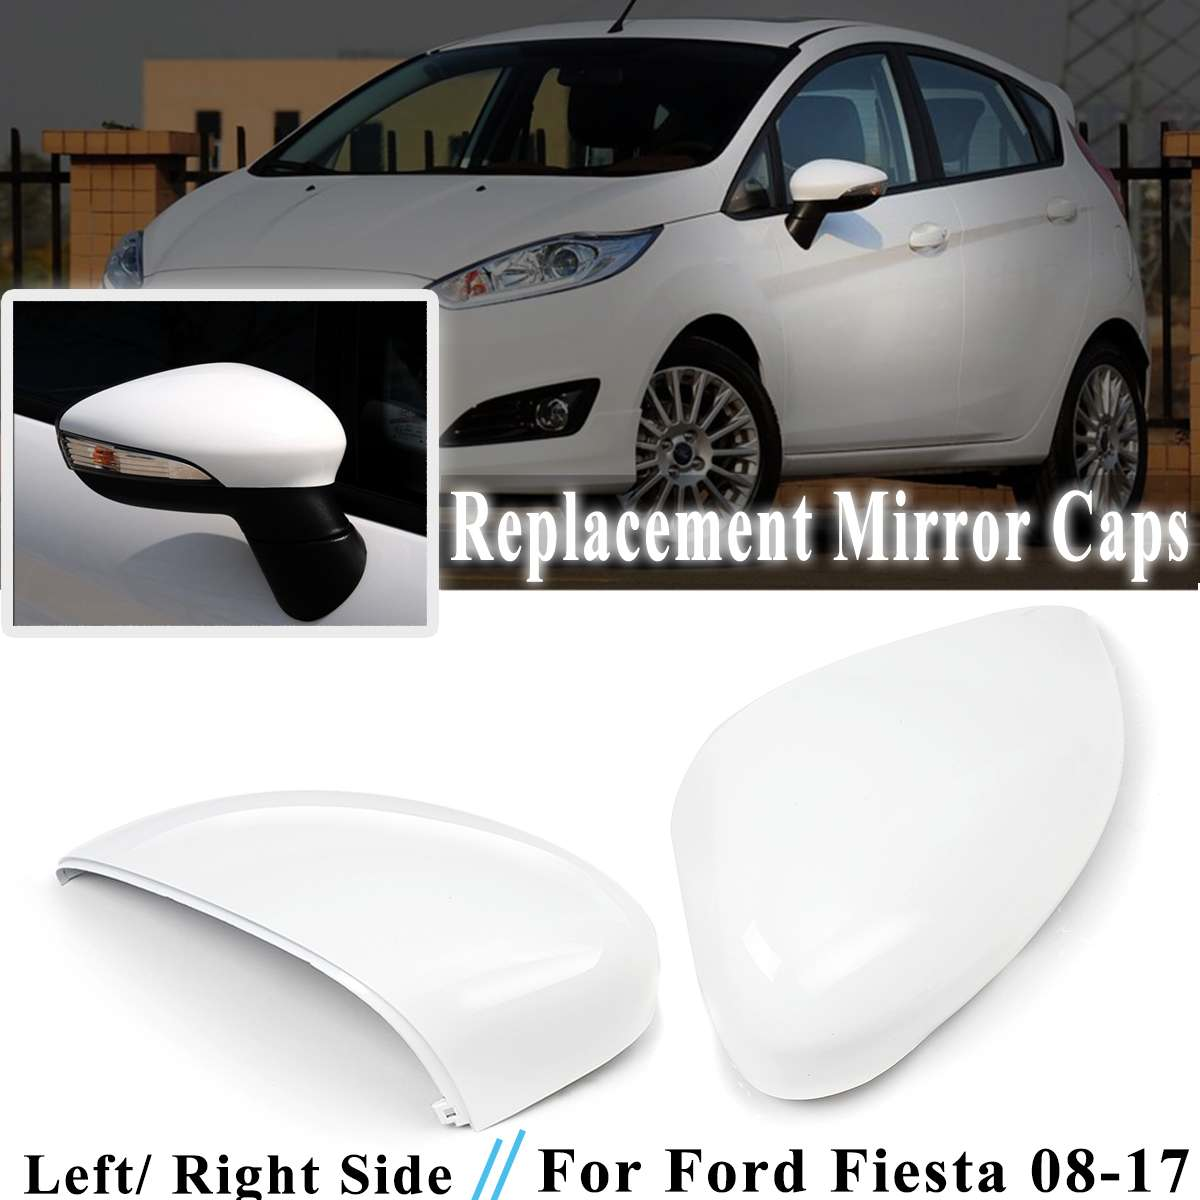 Trend Mark 1pcs Left/right White Rearview Side View Mirror Replacement Cover Cap Case Shell For Ford For Fiesta 2008-2017 Latest Technology Exterior Parts Auto Replacement Parts